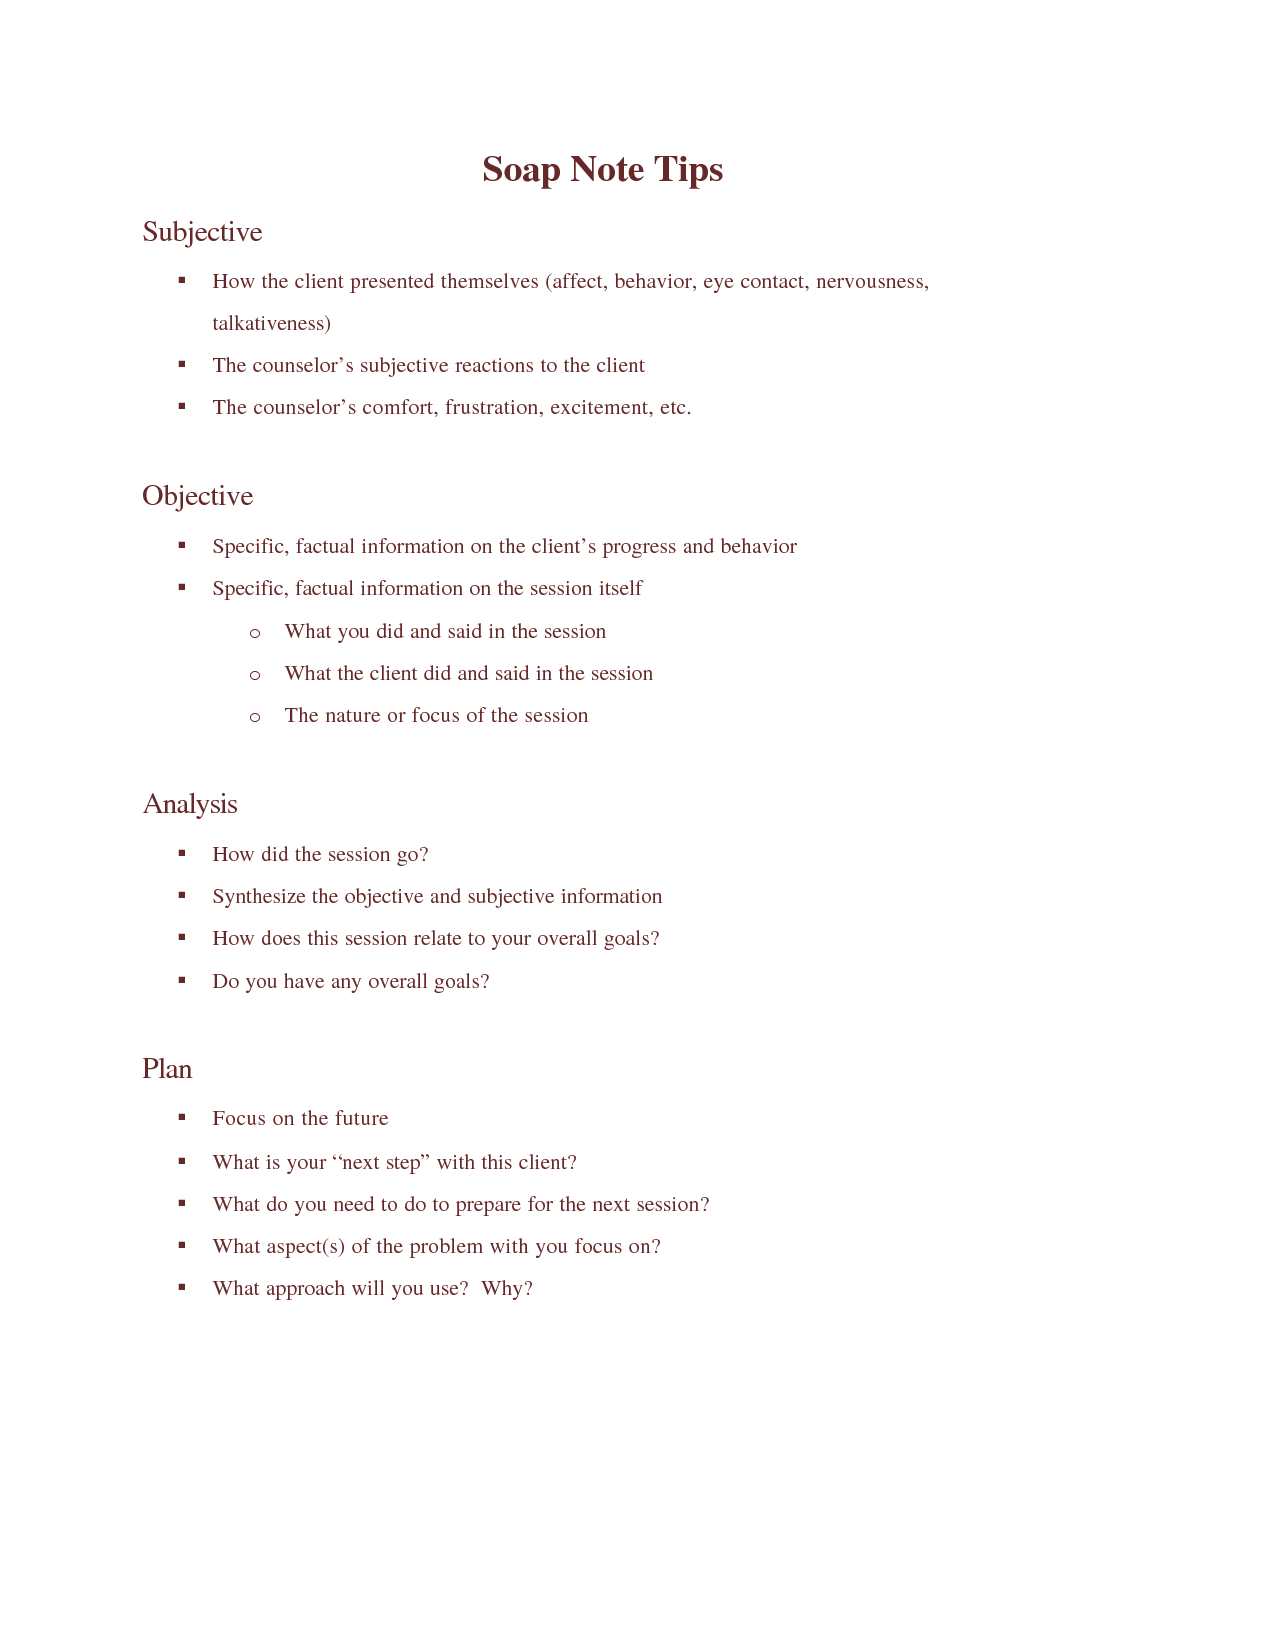 Counseling Template Soap Note Sample